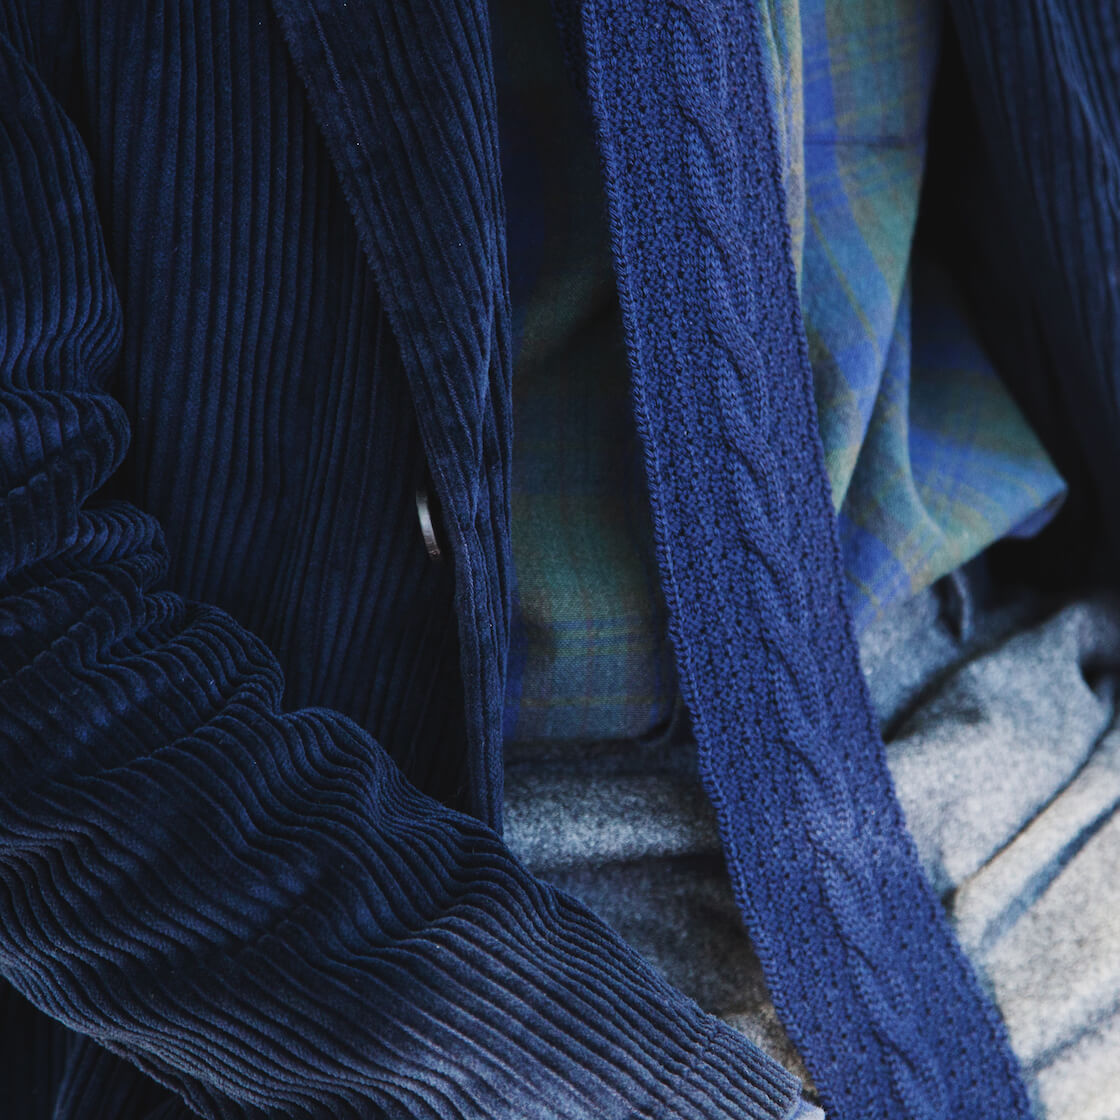 engineered garments pants, engineered garments cable knit tie, homecore jacket, and corridor shirt on body